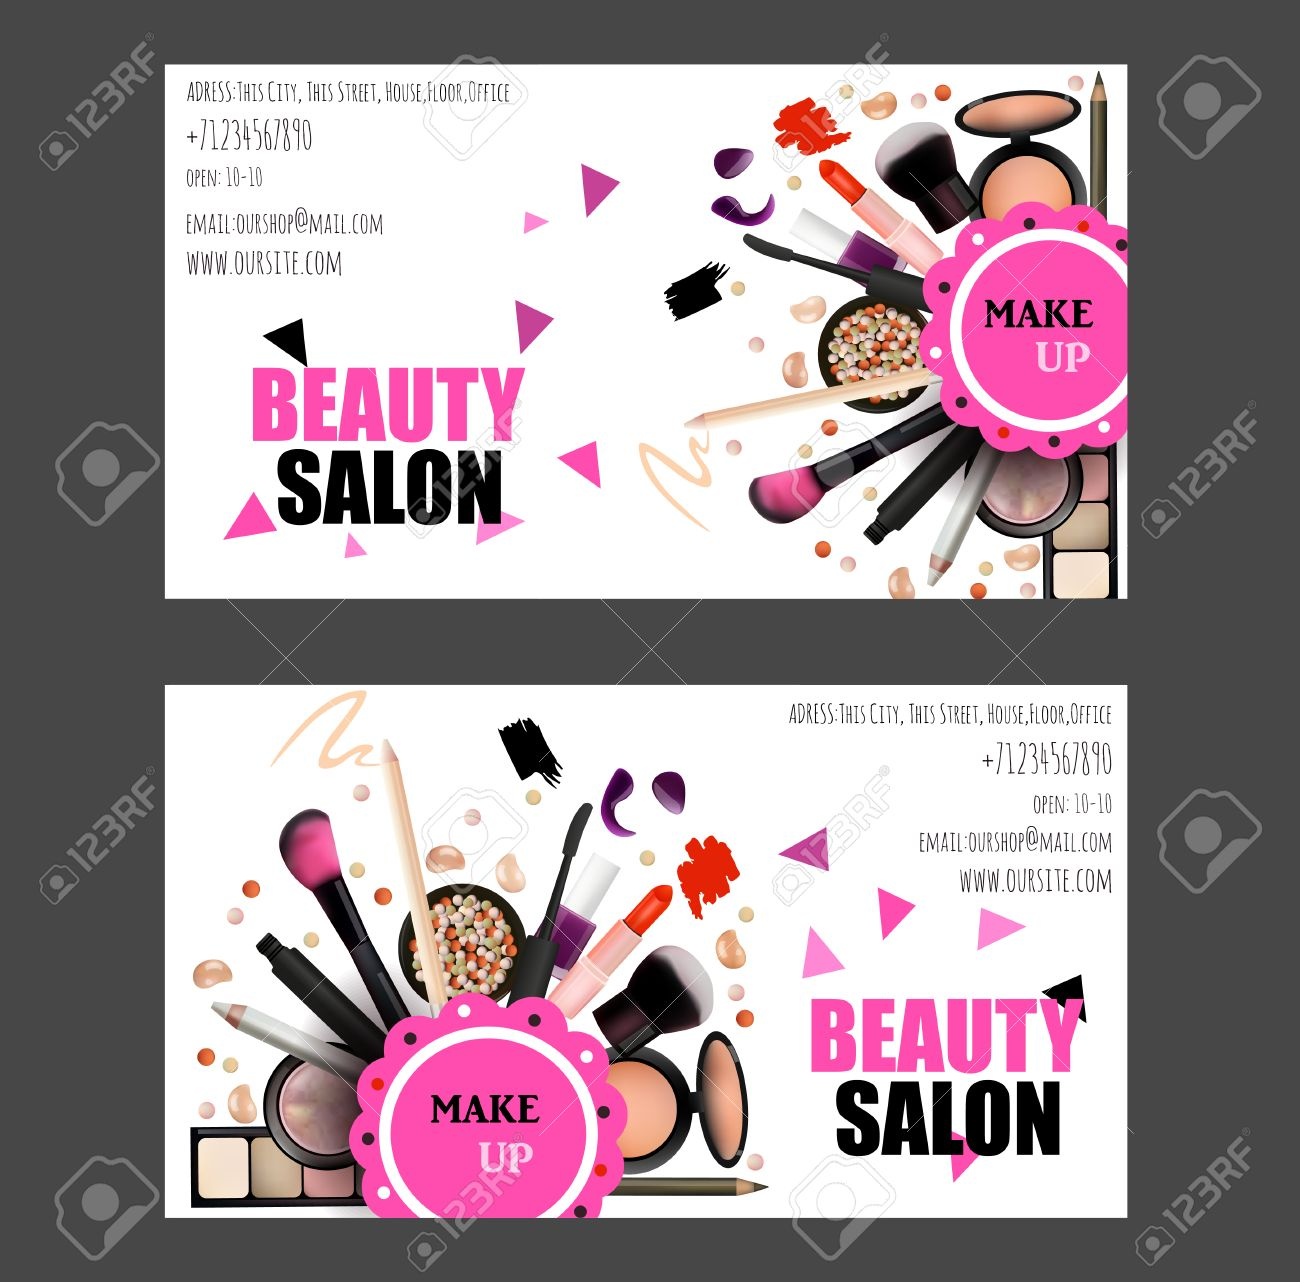 Beauty salon business card design set cosmetic products beauty salon business card design set cosmetic products professional make up care magicingreecefo Images